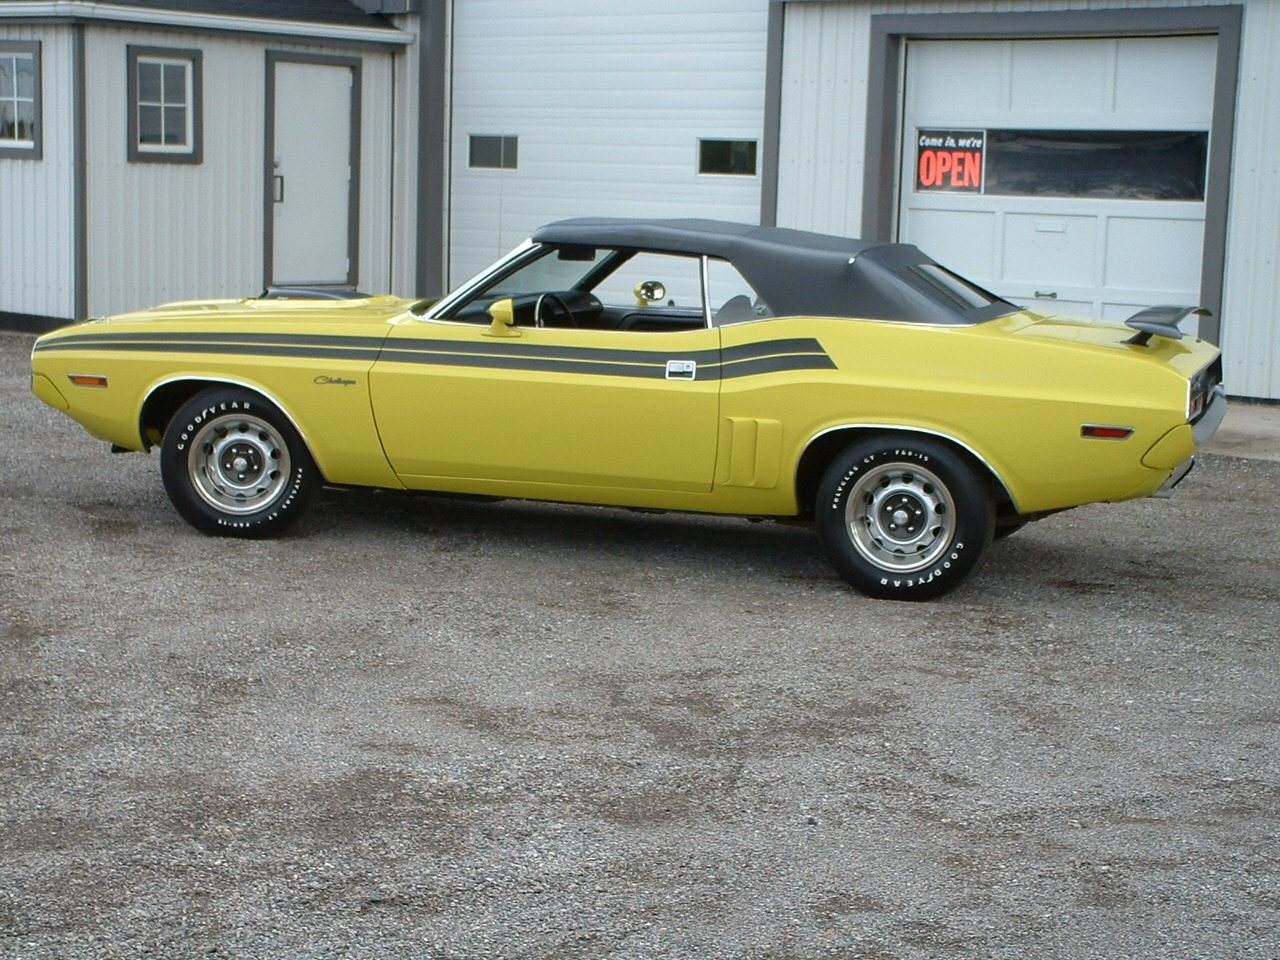 1972 Buick Skylark Custom 2 Door in addition Long Wagon 1965 Dodge W200 together with 2009 Dodge Challenger Pictures C21102 pi35964448 also Watch additionally 3722395426. on 1978 dodge power wagon